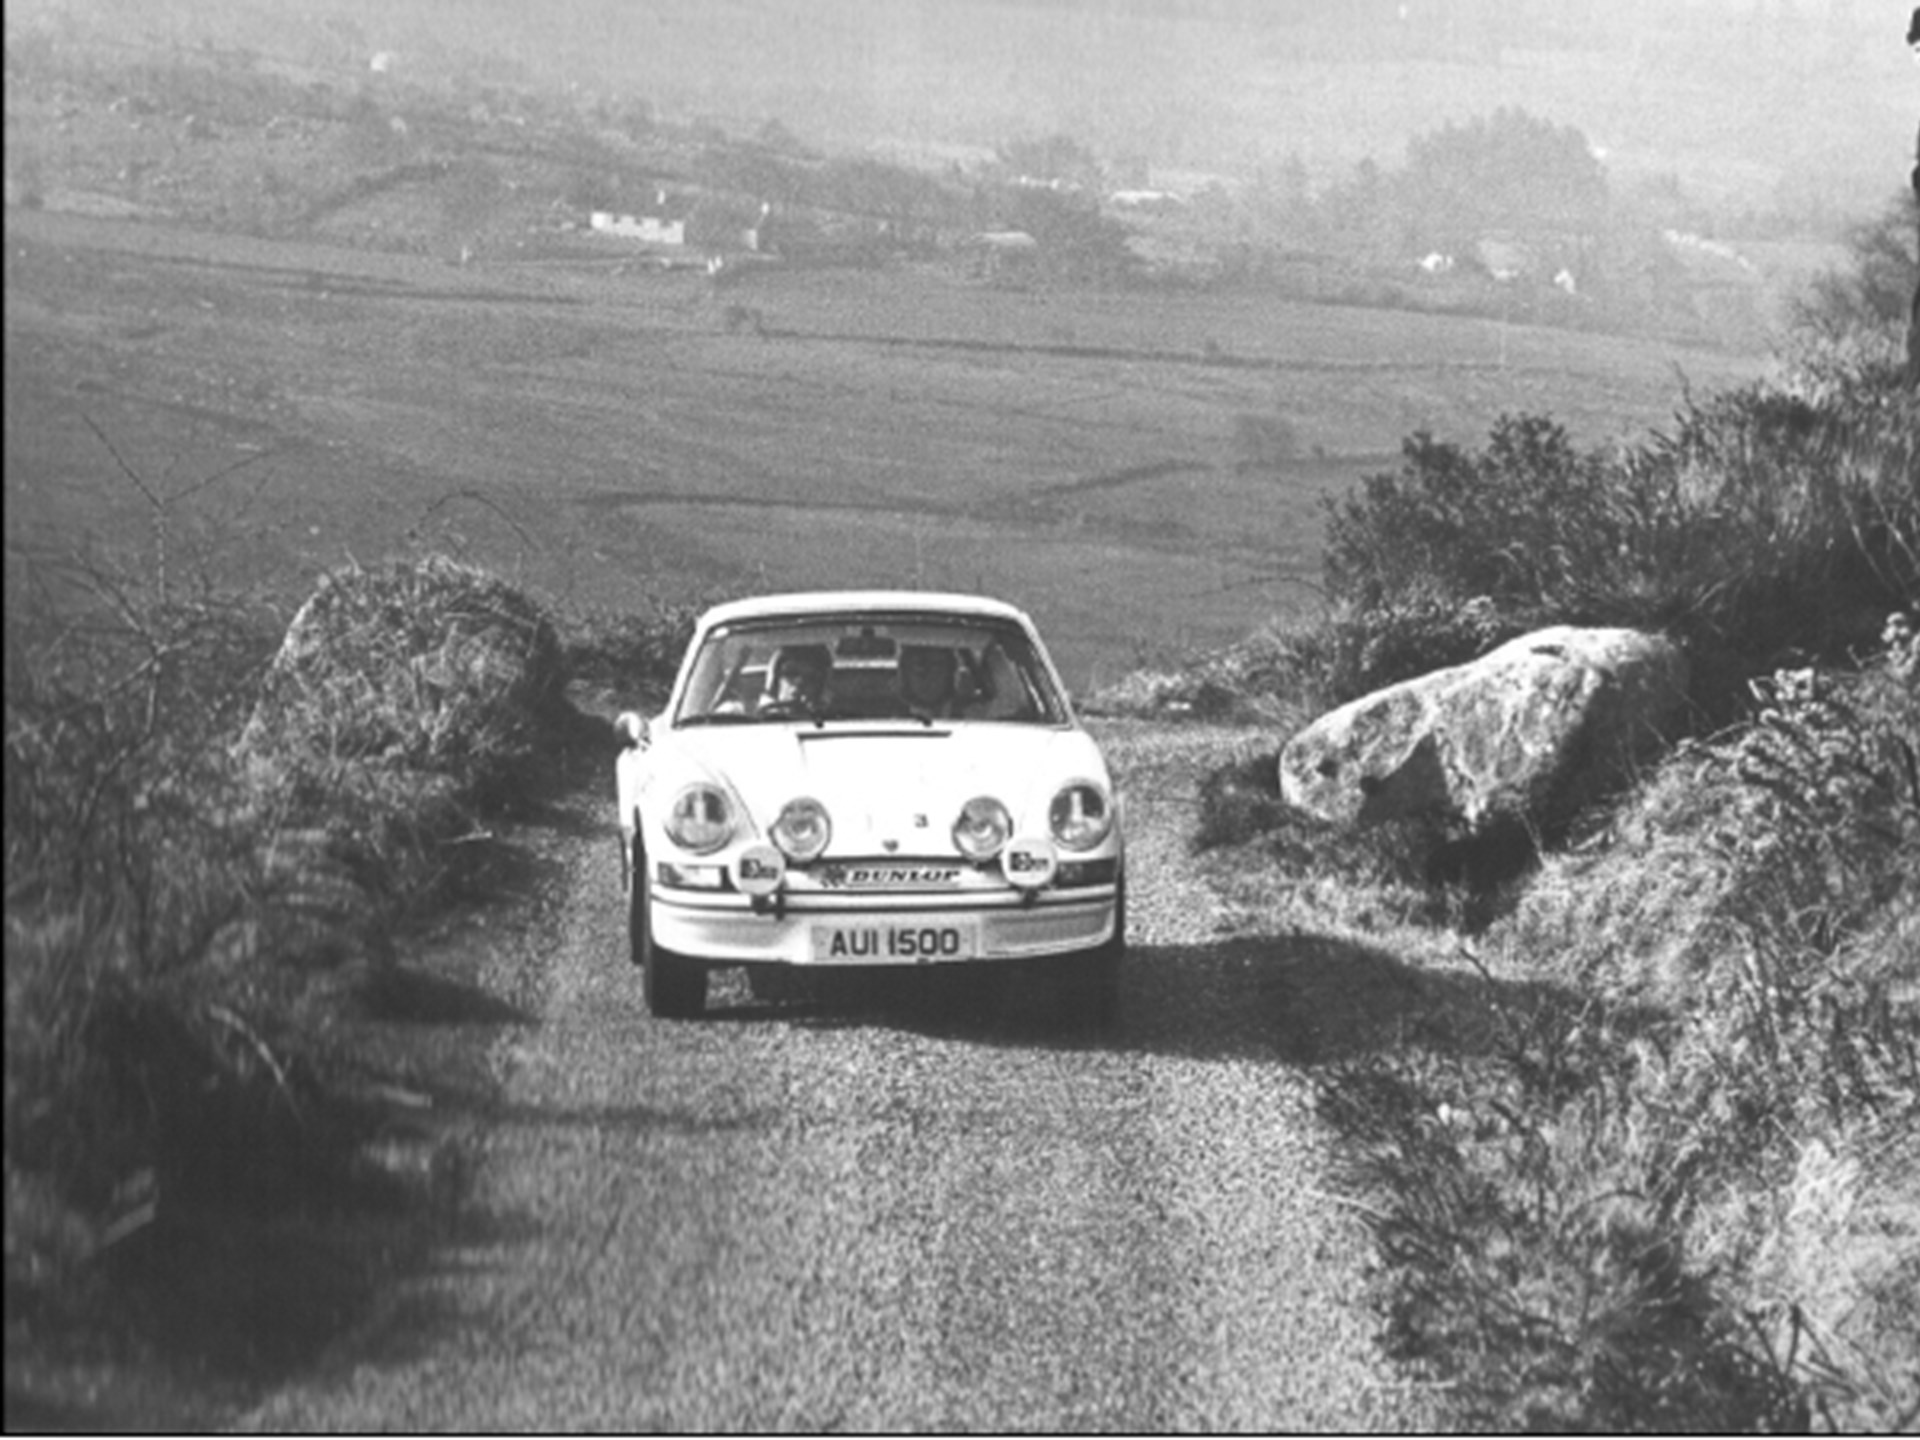 Cathal Curly at the wheel of AUI 1500 driving towards 1st place at the 1974 Circuit of Ireland Rally.